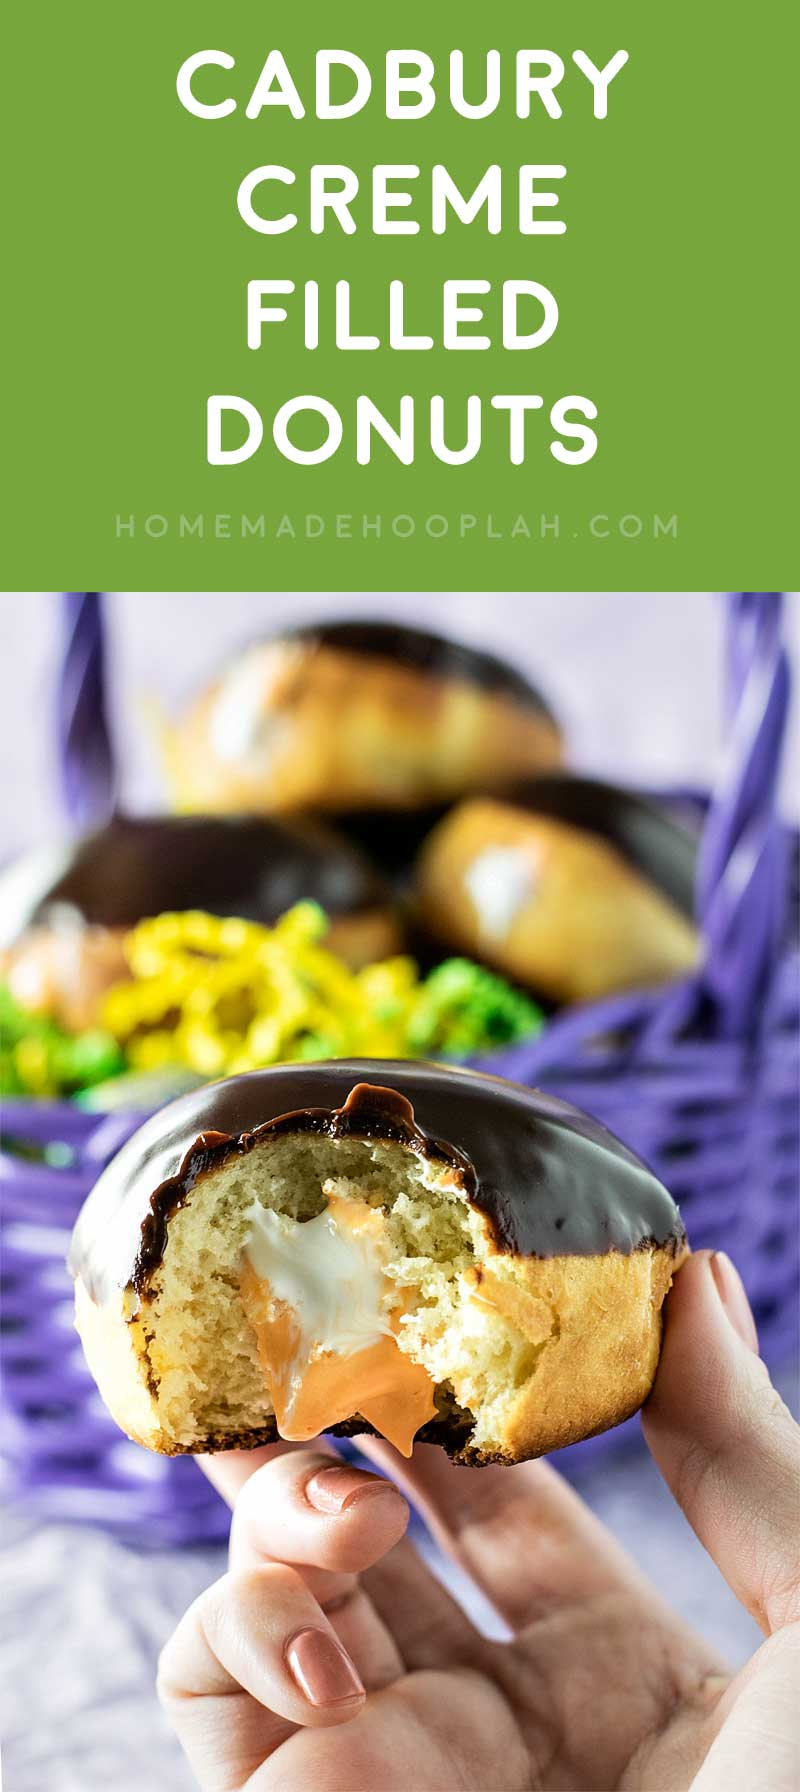 Cadbury Creme Filled Donuts! Everything you love about Cadbury Creme Eggs, but in donut form. Enjoy them year round with milk or dark chocolate glaze! | HomemadeHooplah.com